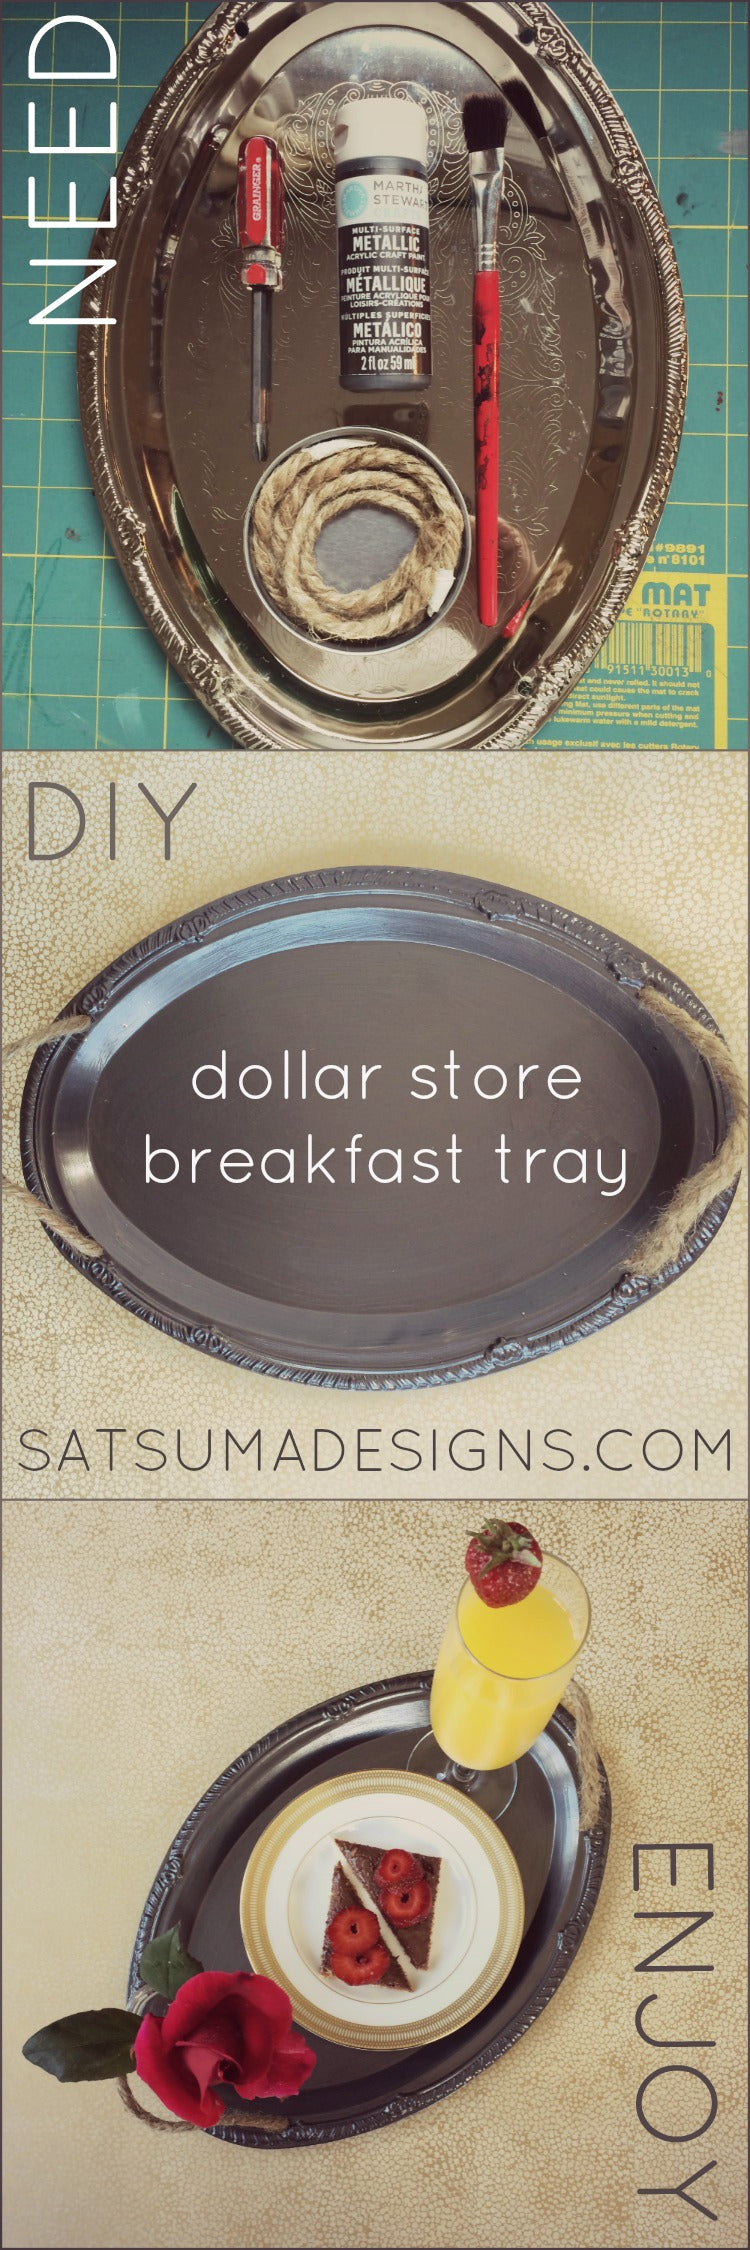 diy dollar store breakfast tray tutorial